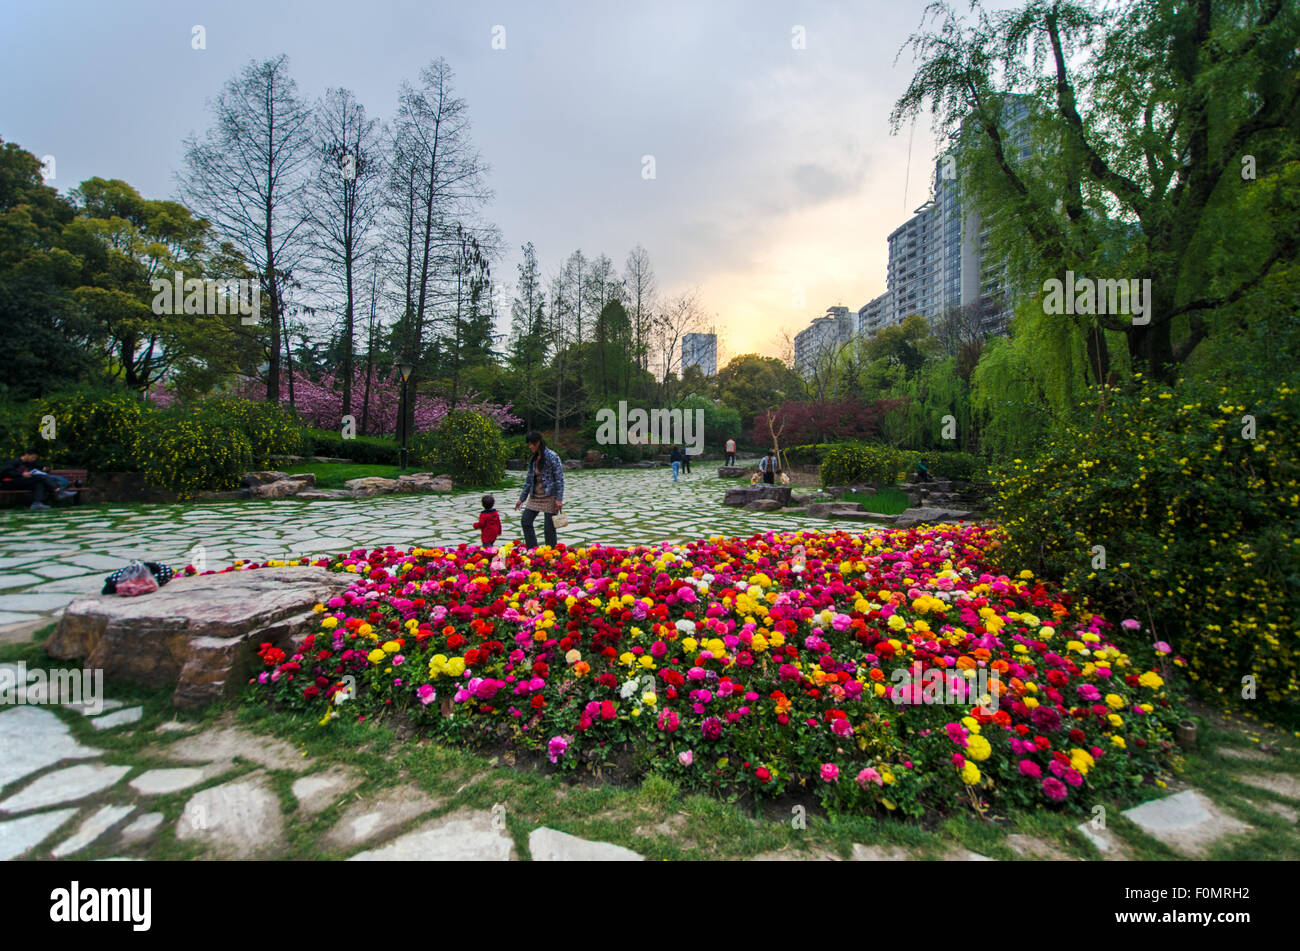 A family enjoying in one of the parks in Shanghai. - Stock Image